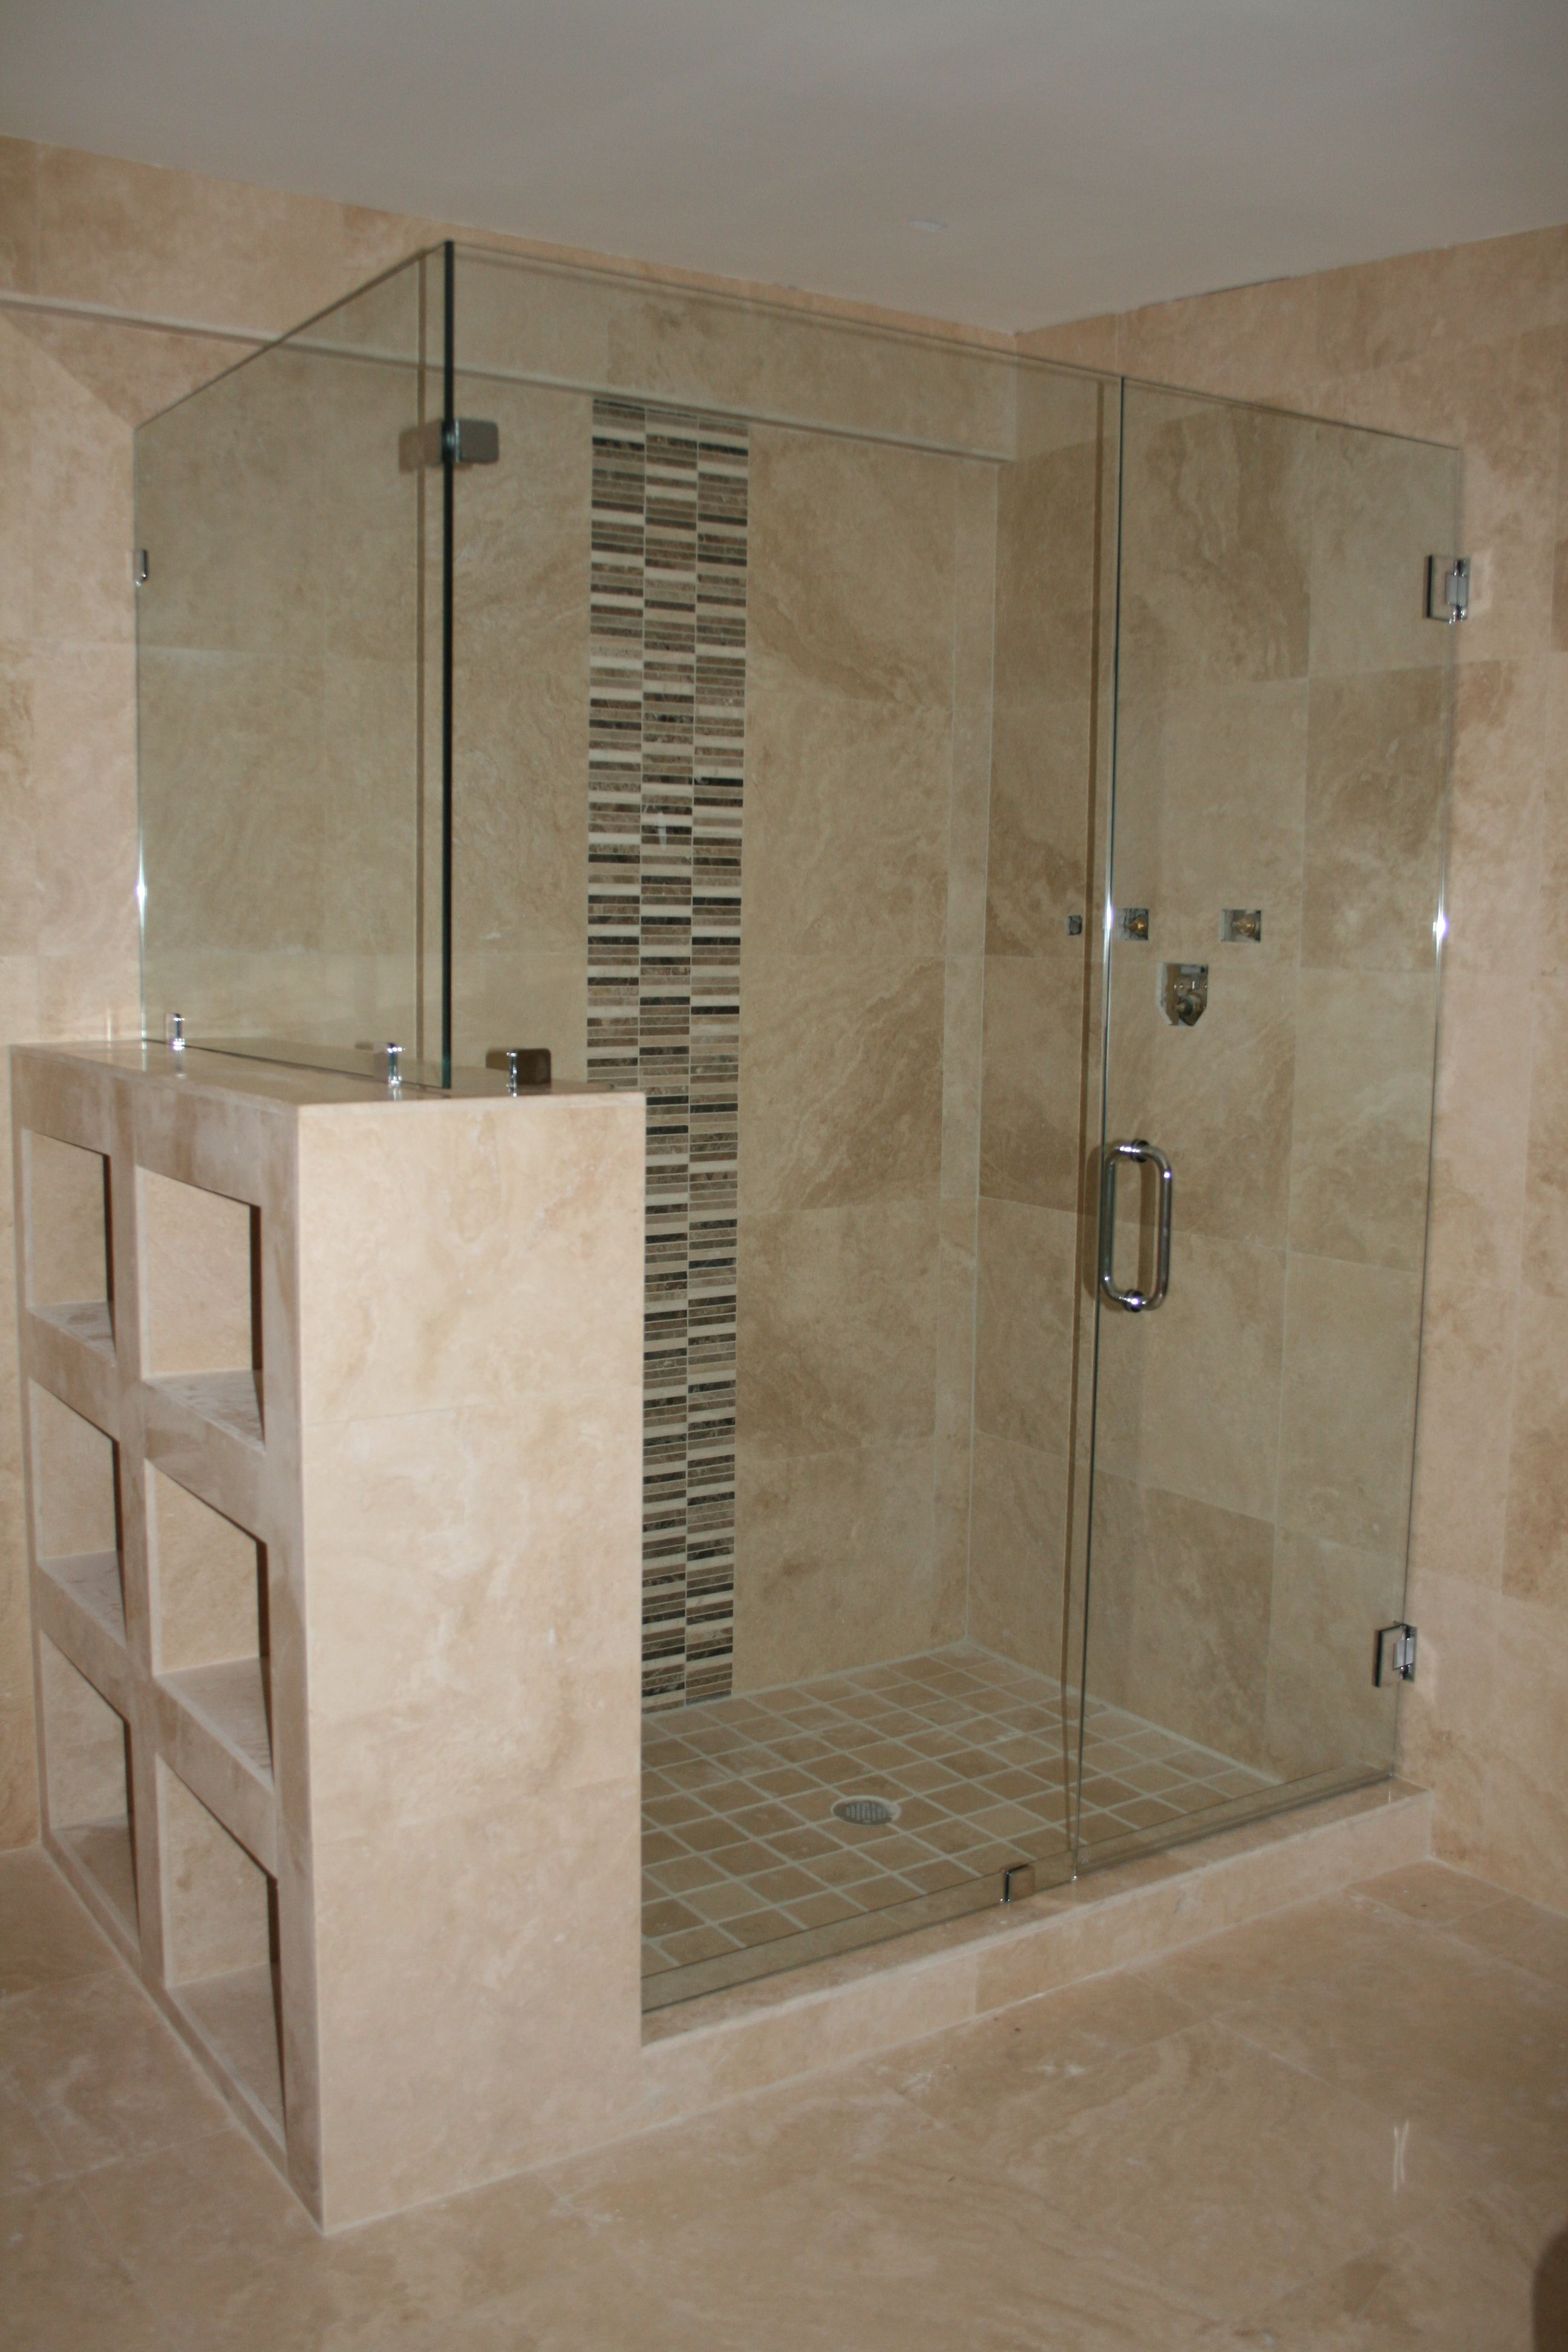 Clear Glass Frameless Shower Badezimmerideen Zimmer Zimmer Ideen